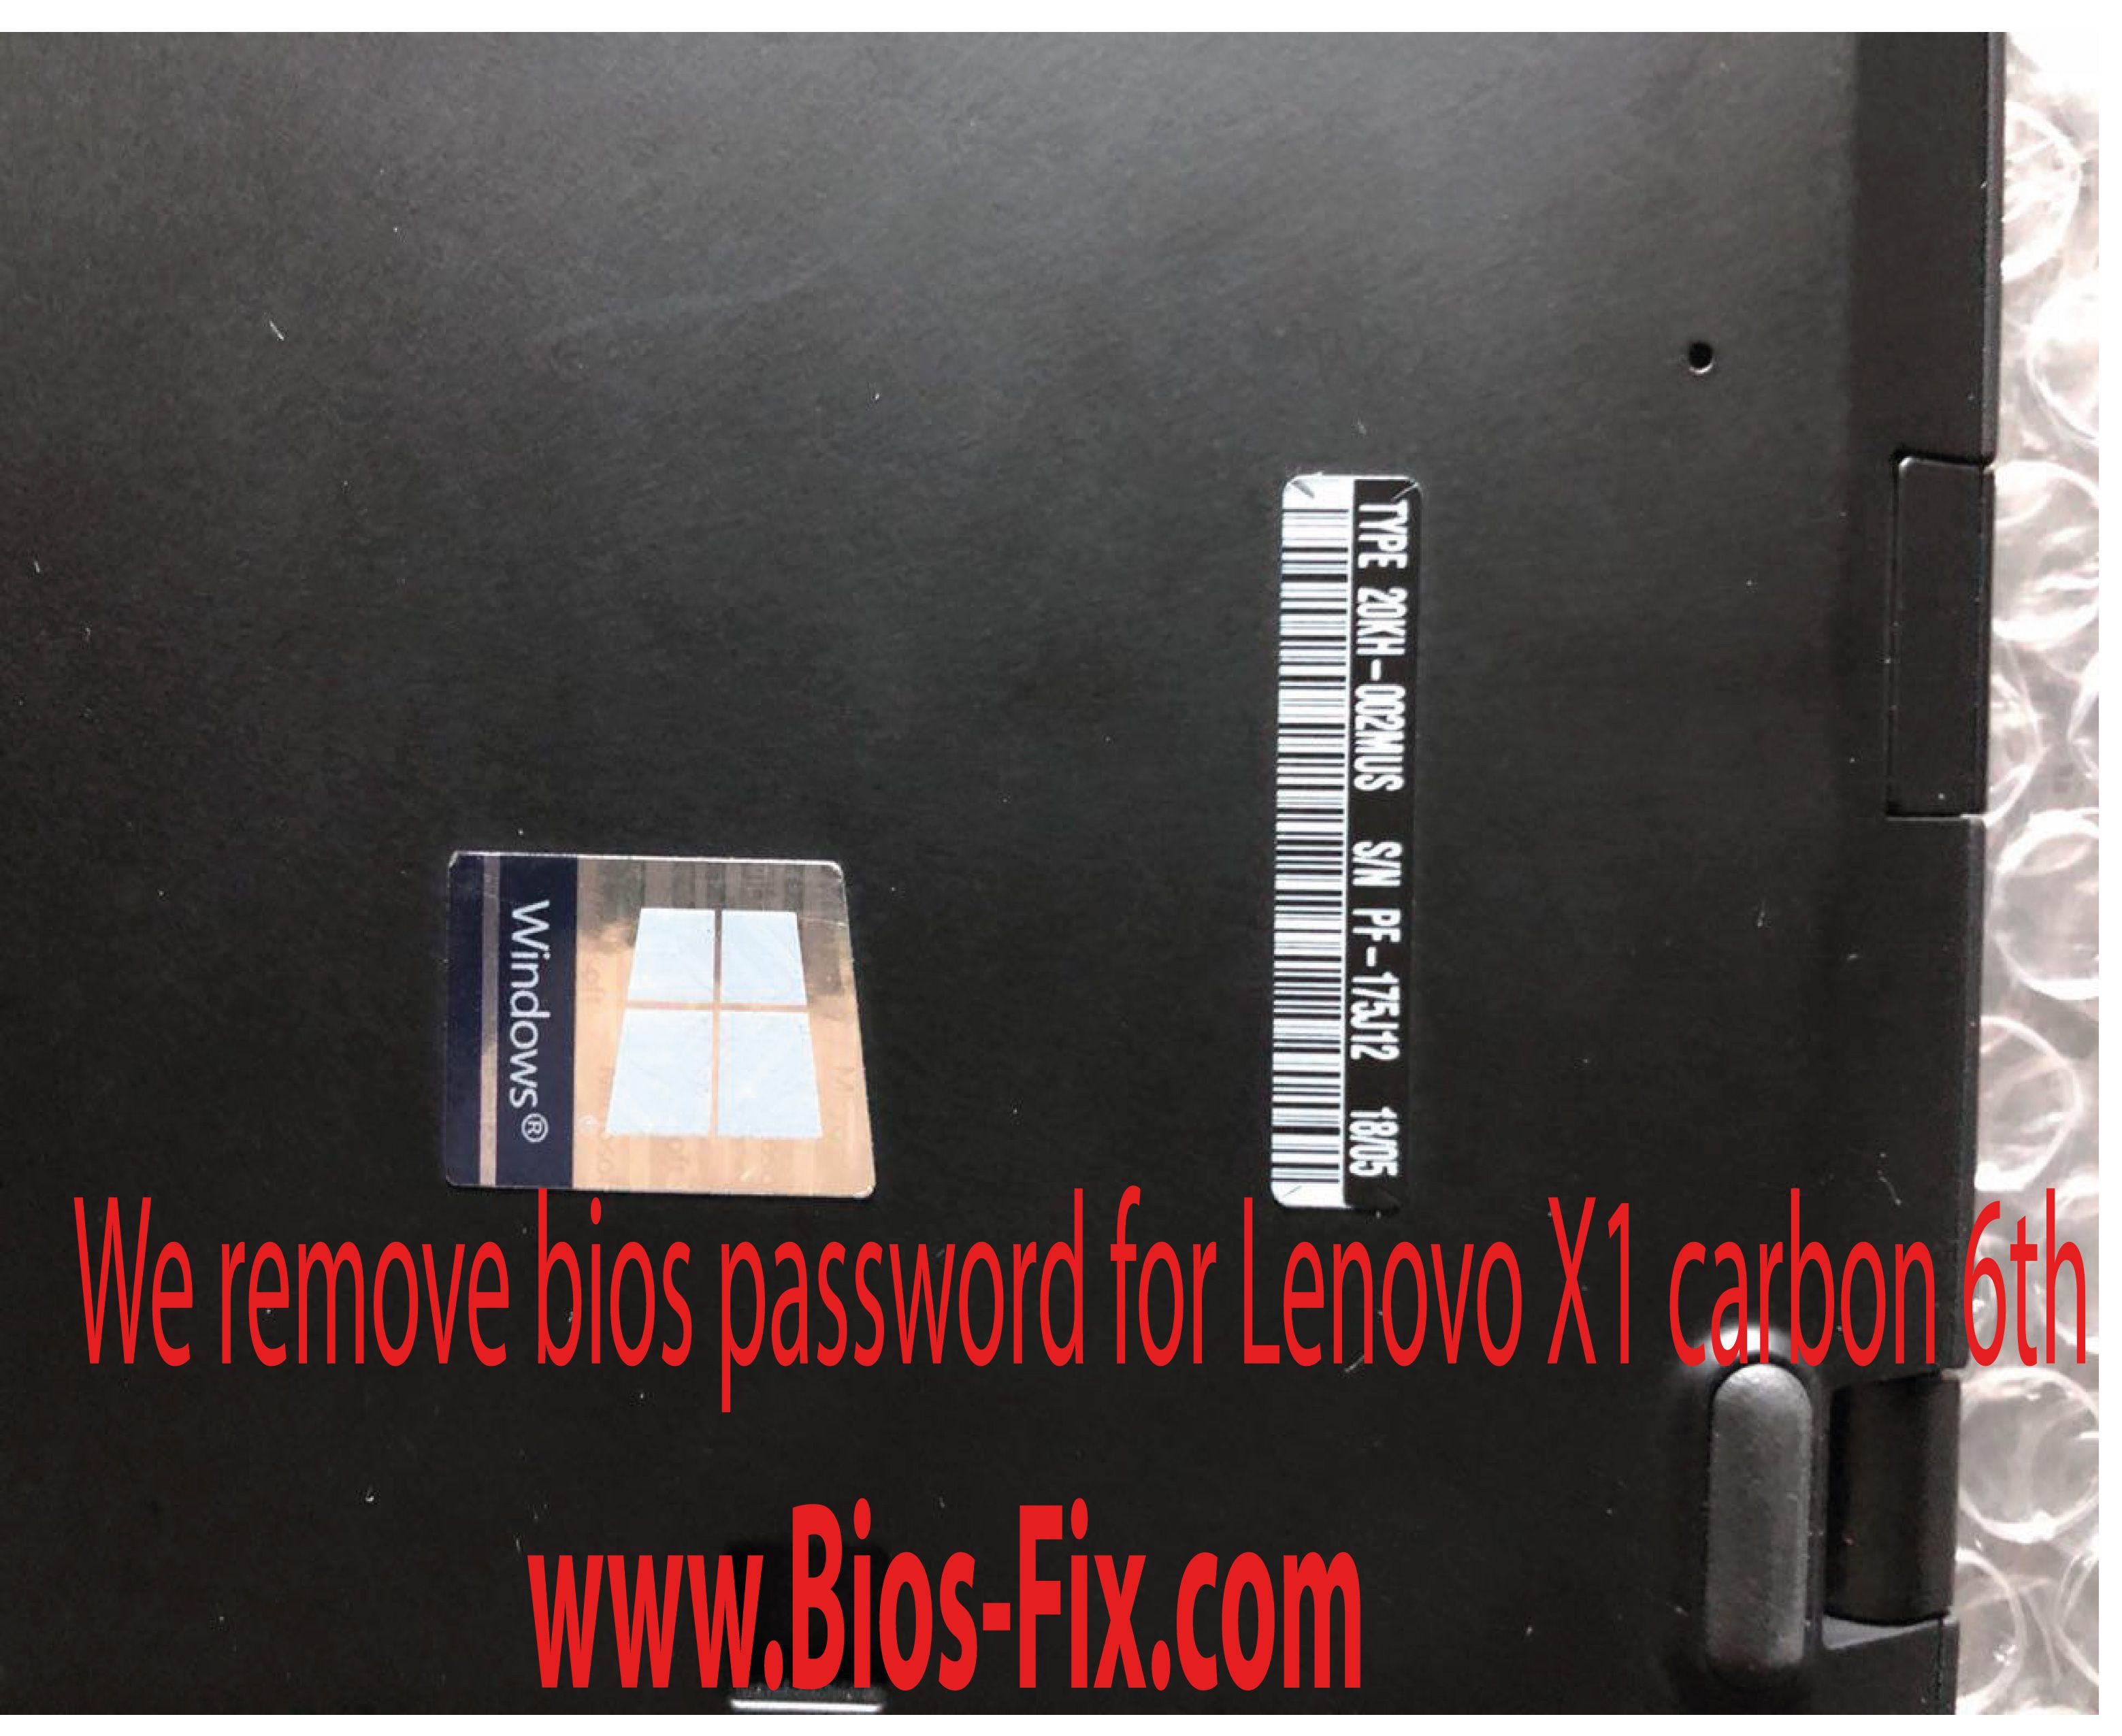 remove-bios-password-for-Lenovo-X1-carbon-6th.jpg